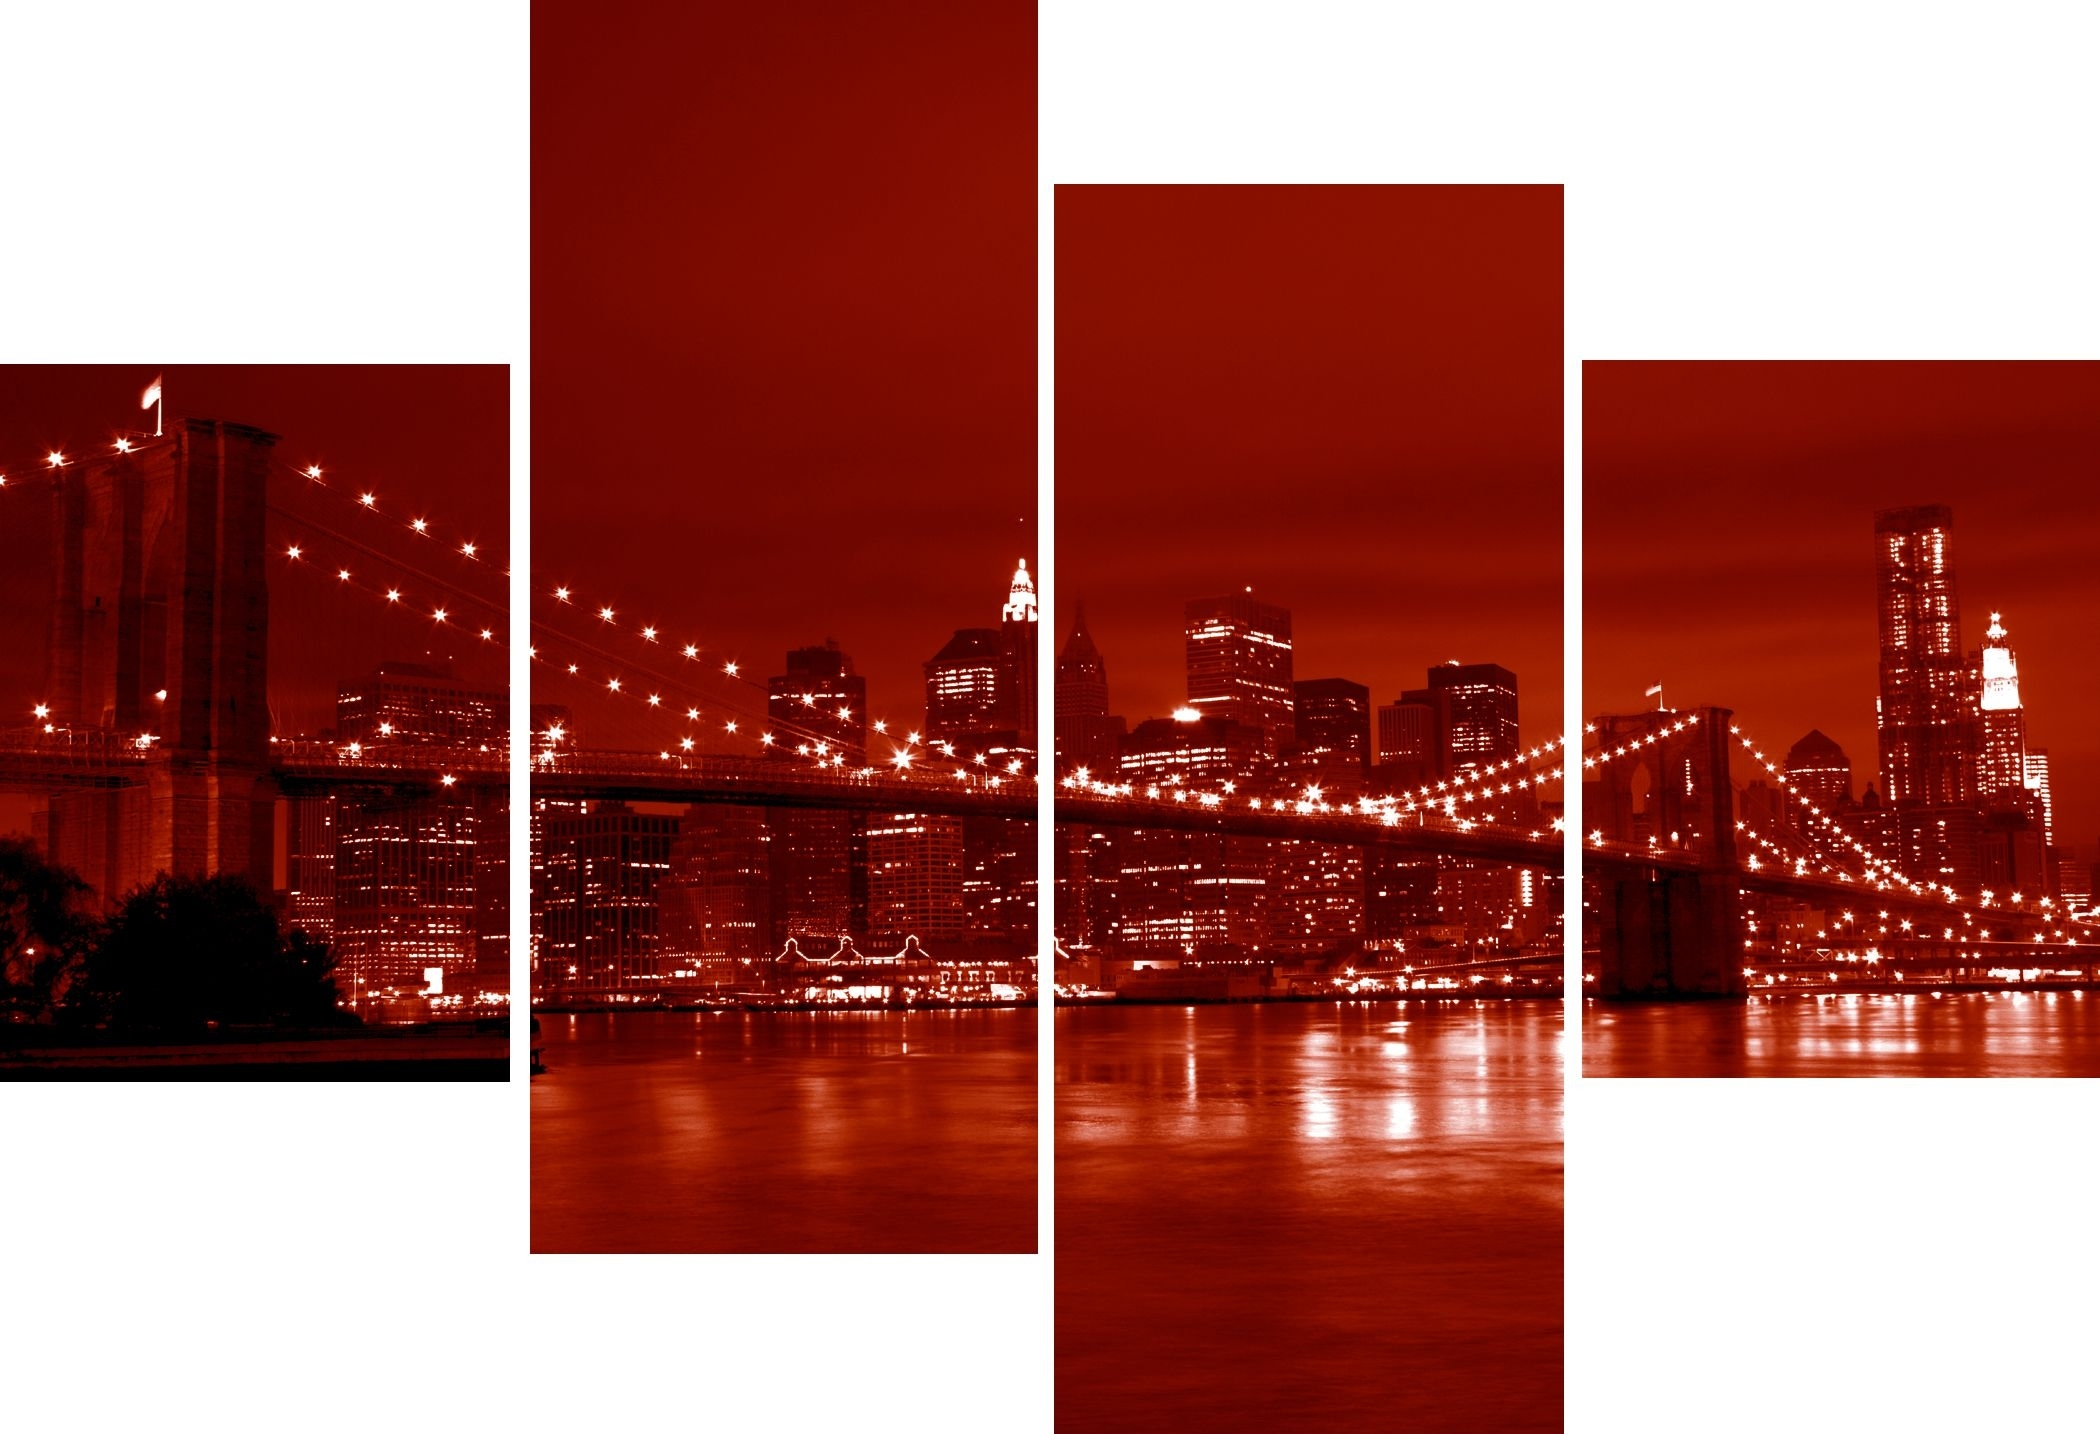 Wall Art: Extraordinary Red Canvas Wall Art Wall Art In Red, Black With Best And Newest Canvas Wall Art In Red (View 7 of 15)